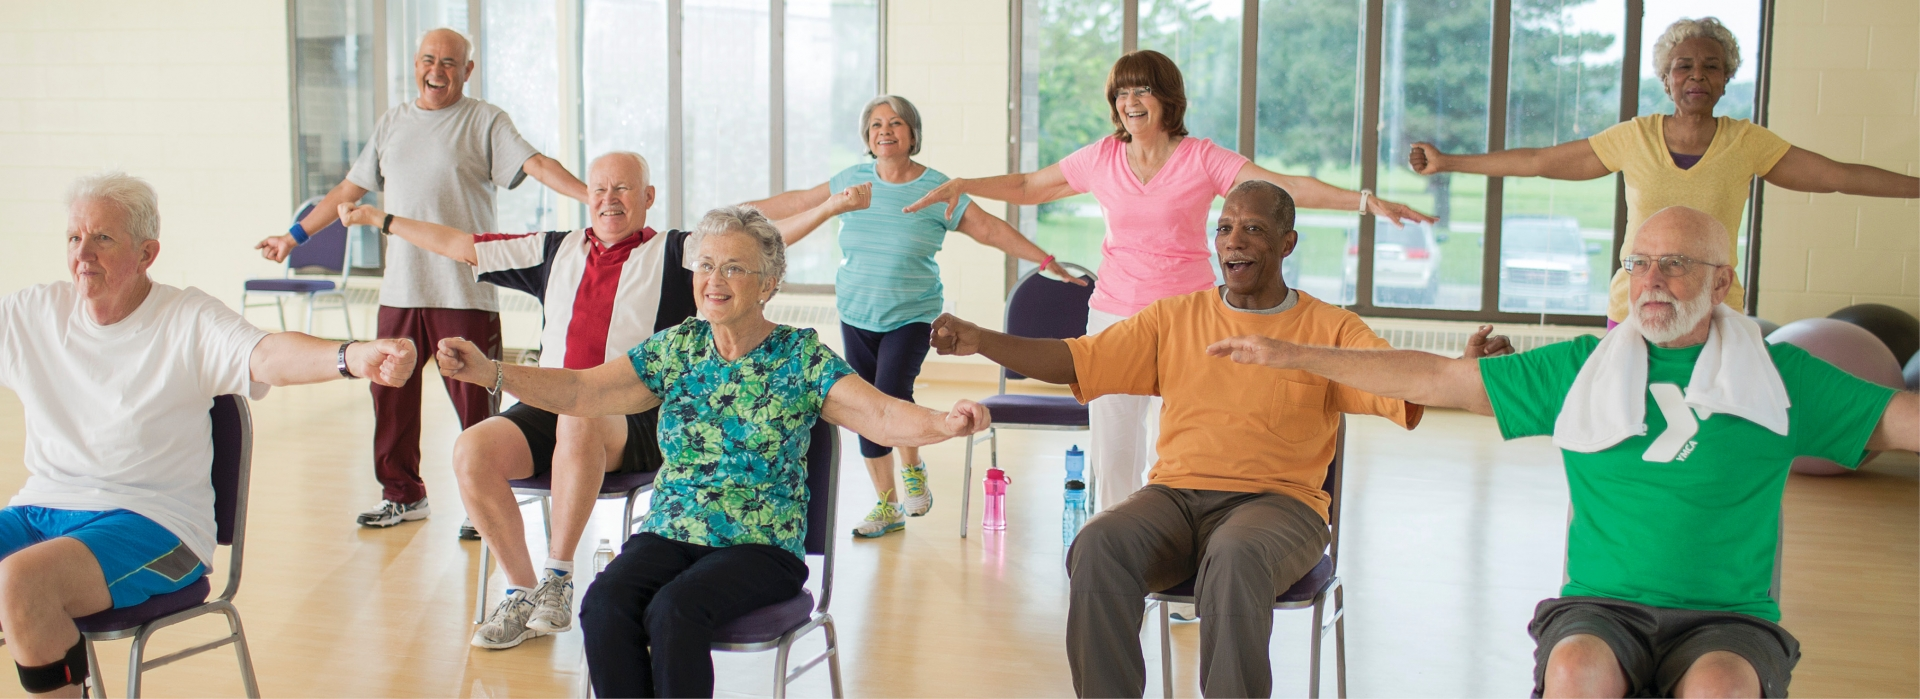 A group of adults exercise in a YMCA program for health